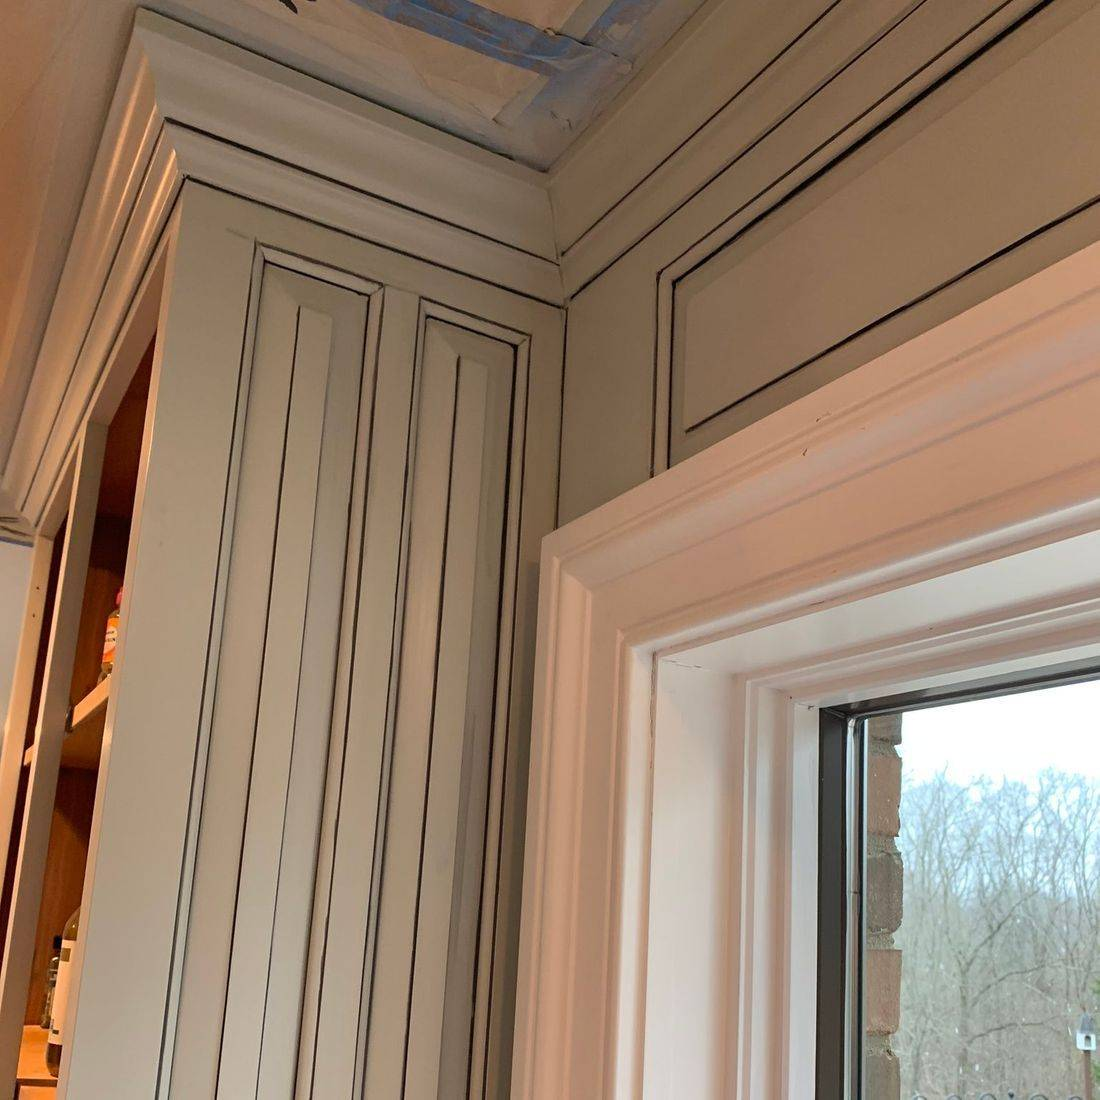 cabinet painting, refinishing, cabinet resurfacing, kitchen cabinet painting, custom painting, cincinnati, ohio, scott fritz, Scott Fritz wall creations, Cincinnati, Ohio